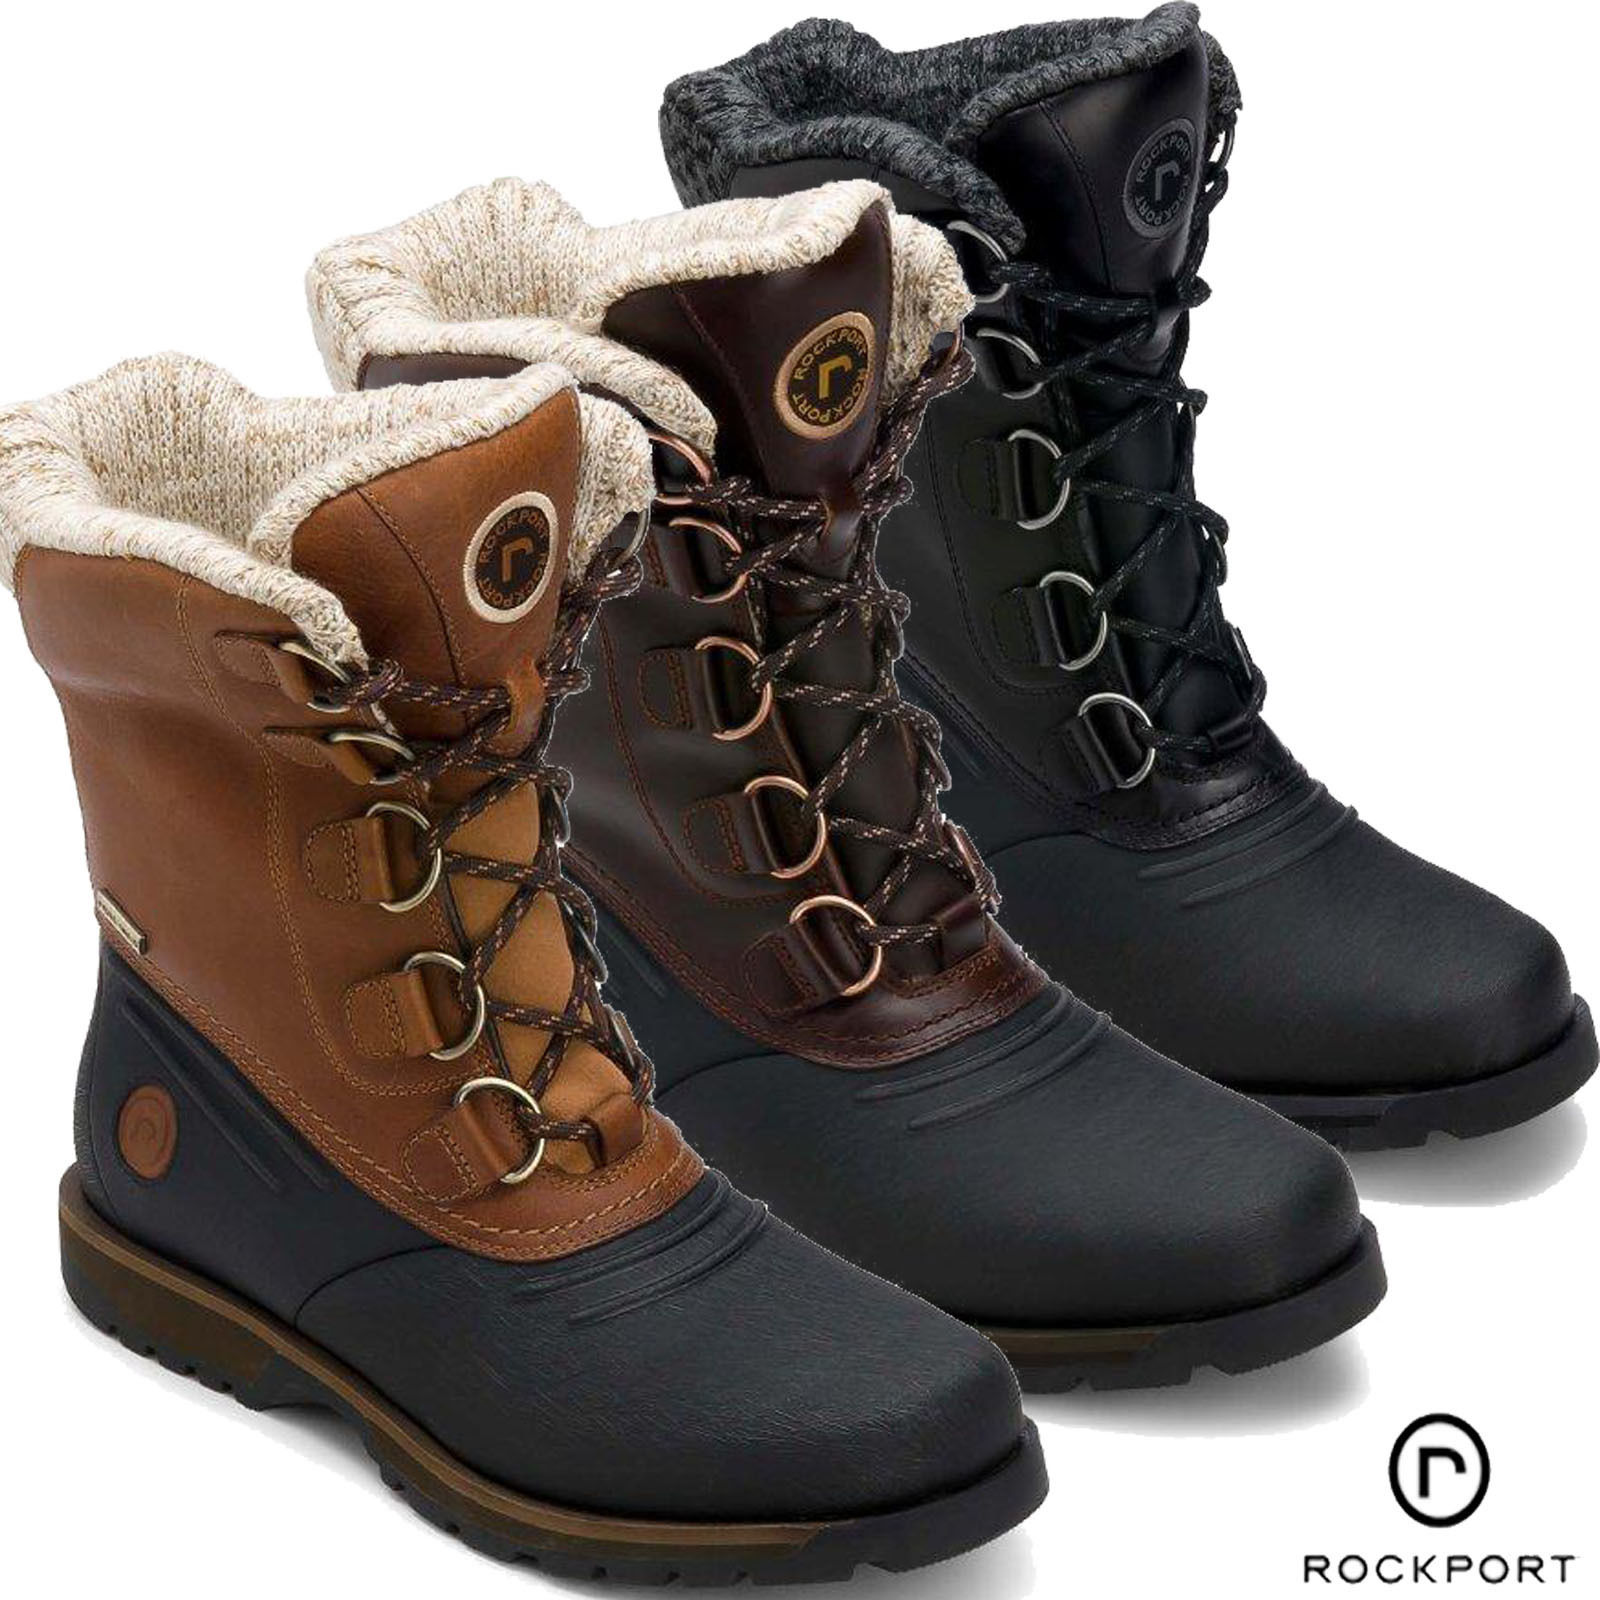 winter boots for men mens winter snow boots uk EJINZJU